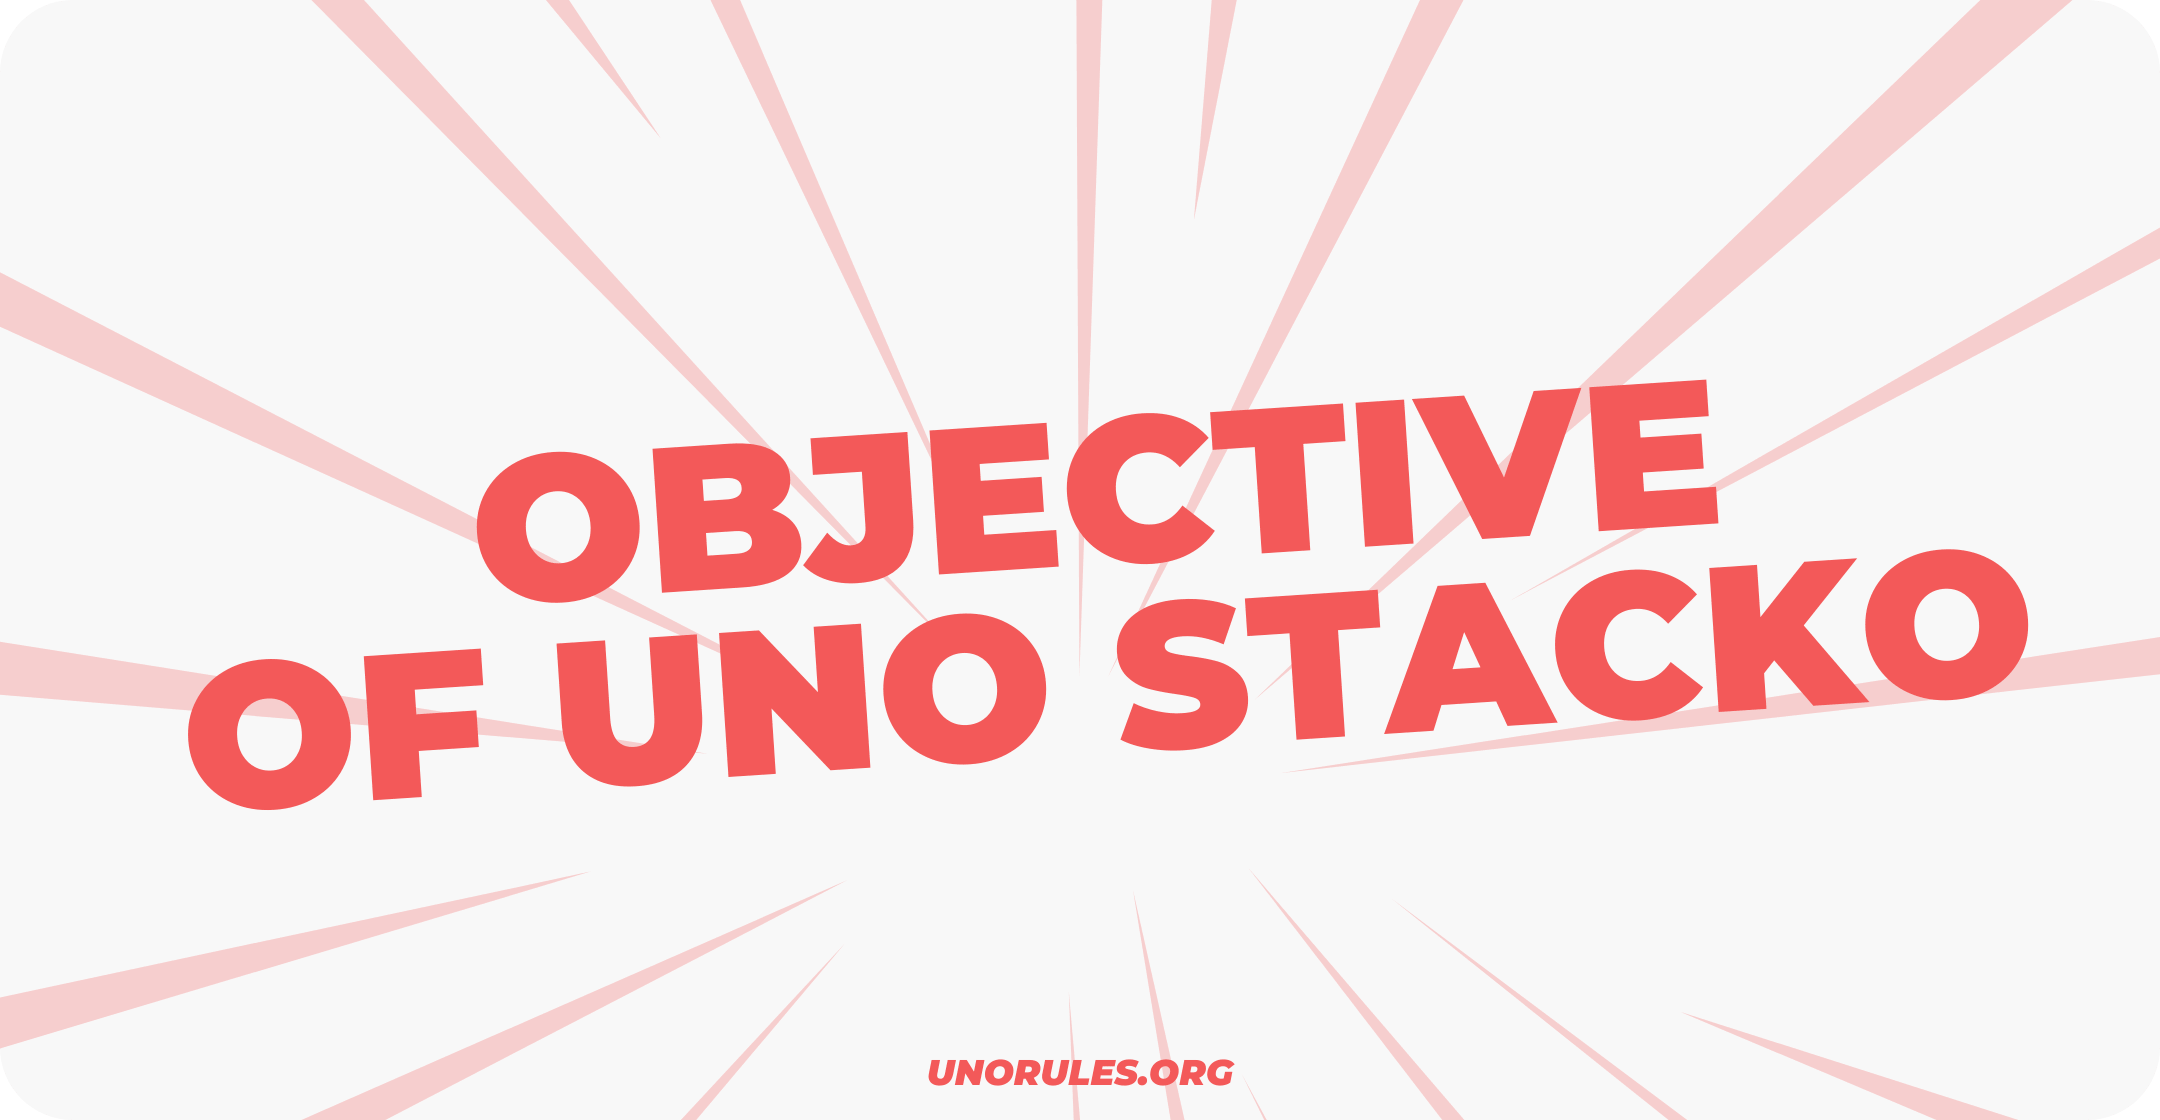 Objective of Uno Stacko